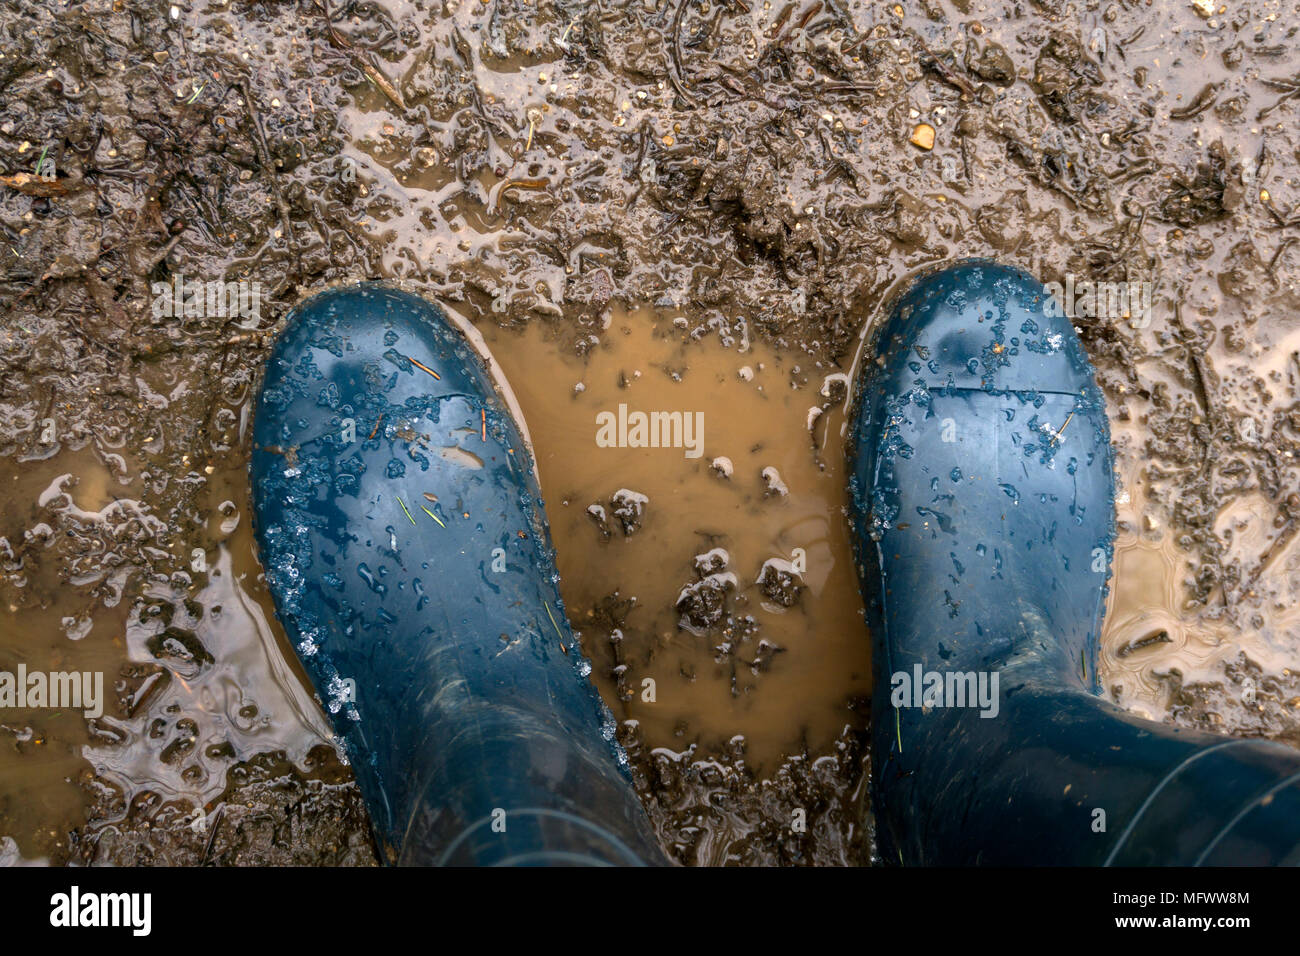 human feet in rubber boots stand in the mud, top-down view - Stock Image